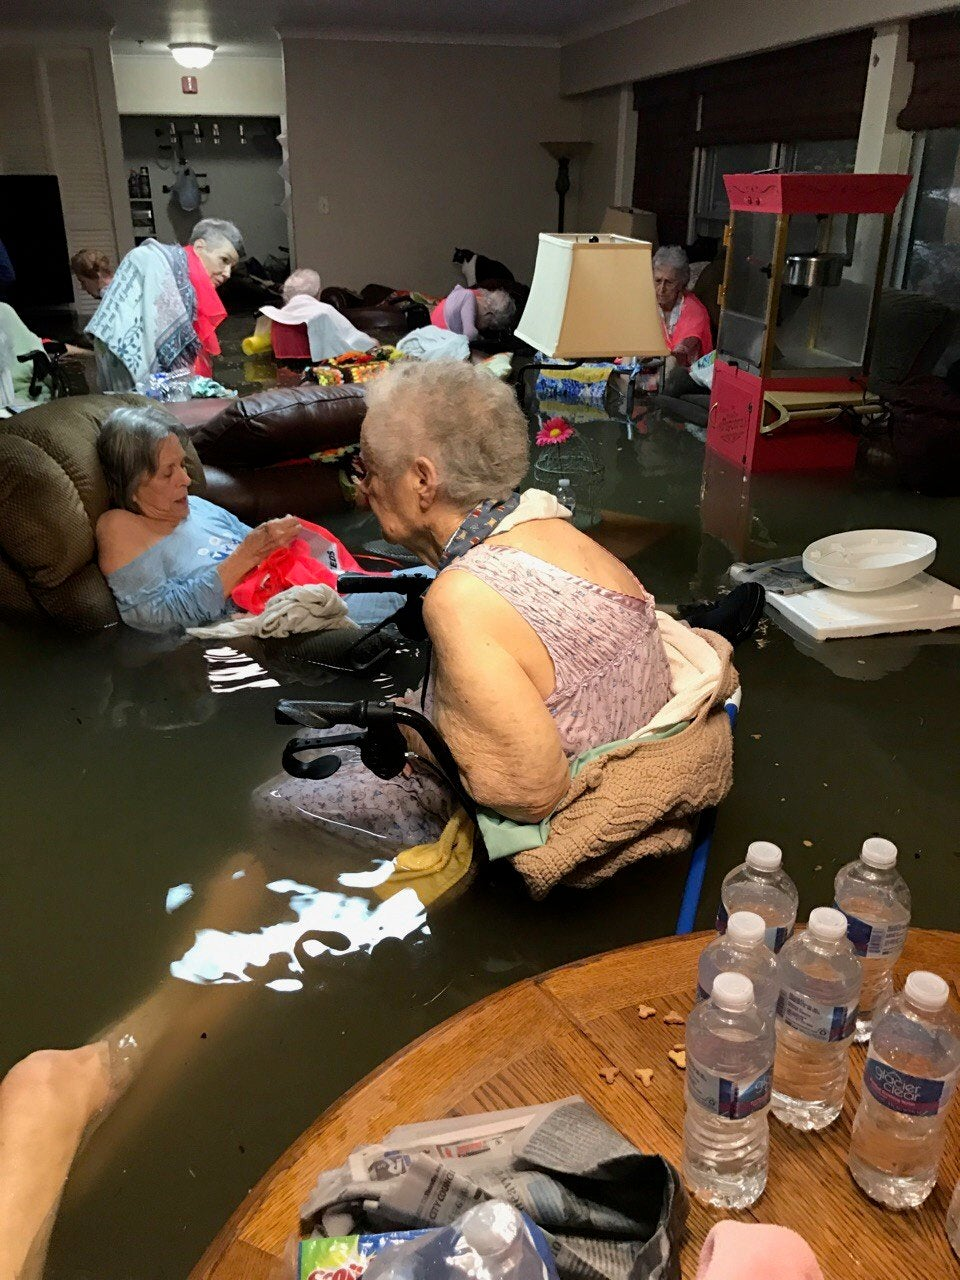 'Need Help ASAP.' The Story Behind The Photo Of Nursing Home Residents Trapped In Hurricane Flood Water